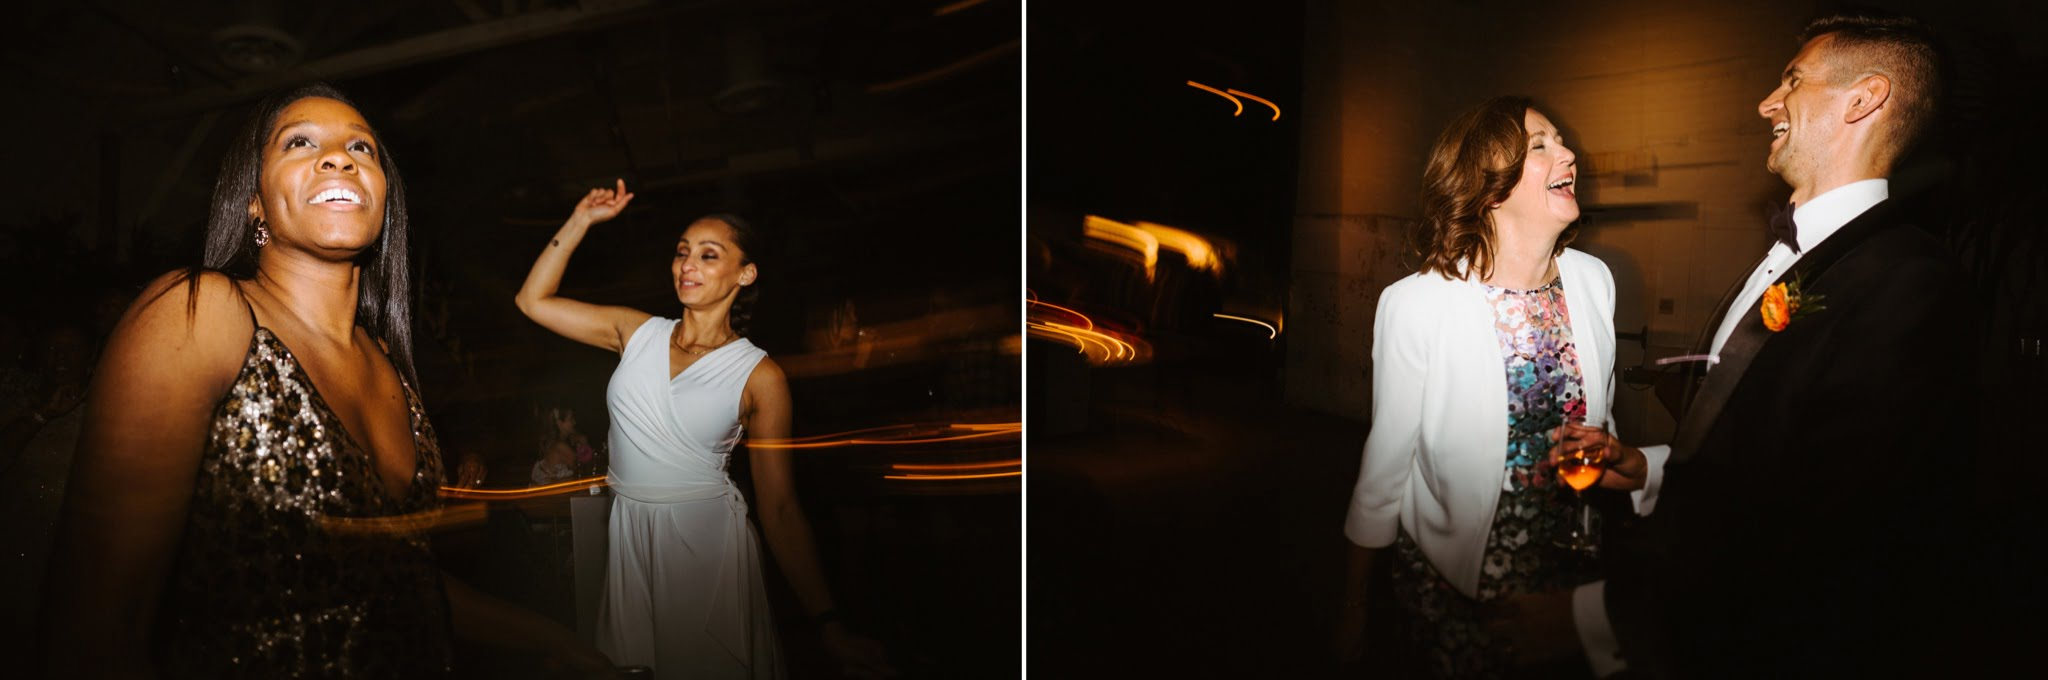 dtla wedding photographer 165